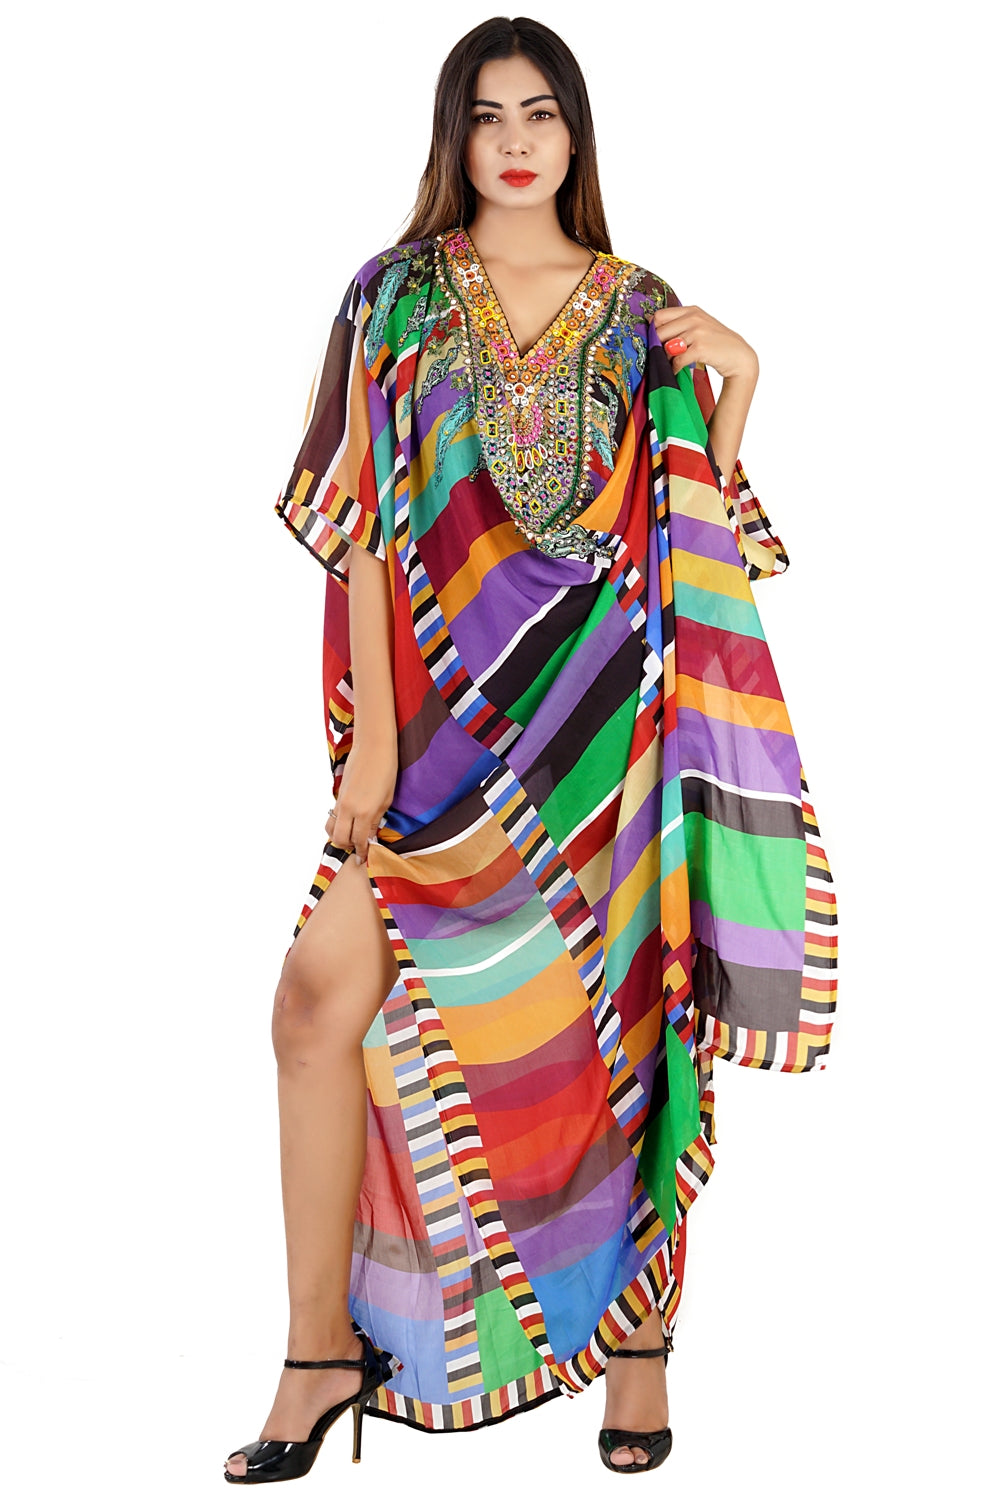 Colorful Beaded Silk Kaftan embellished with crystals beads patch work near neckline vacation beach outfits - Silk kaftan